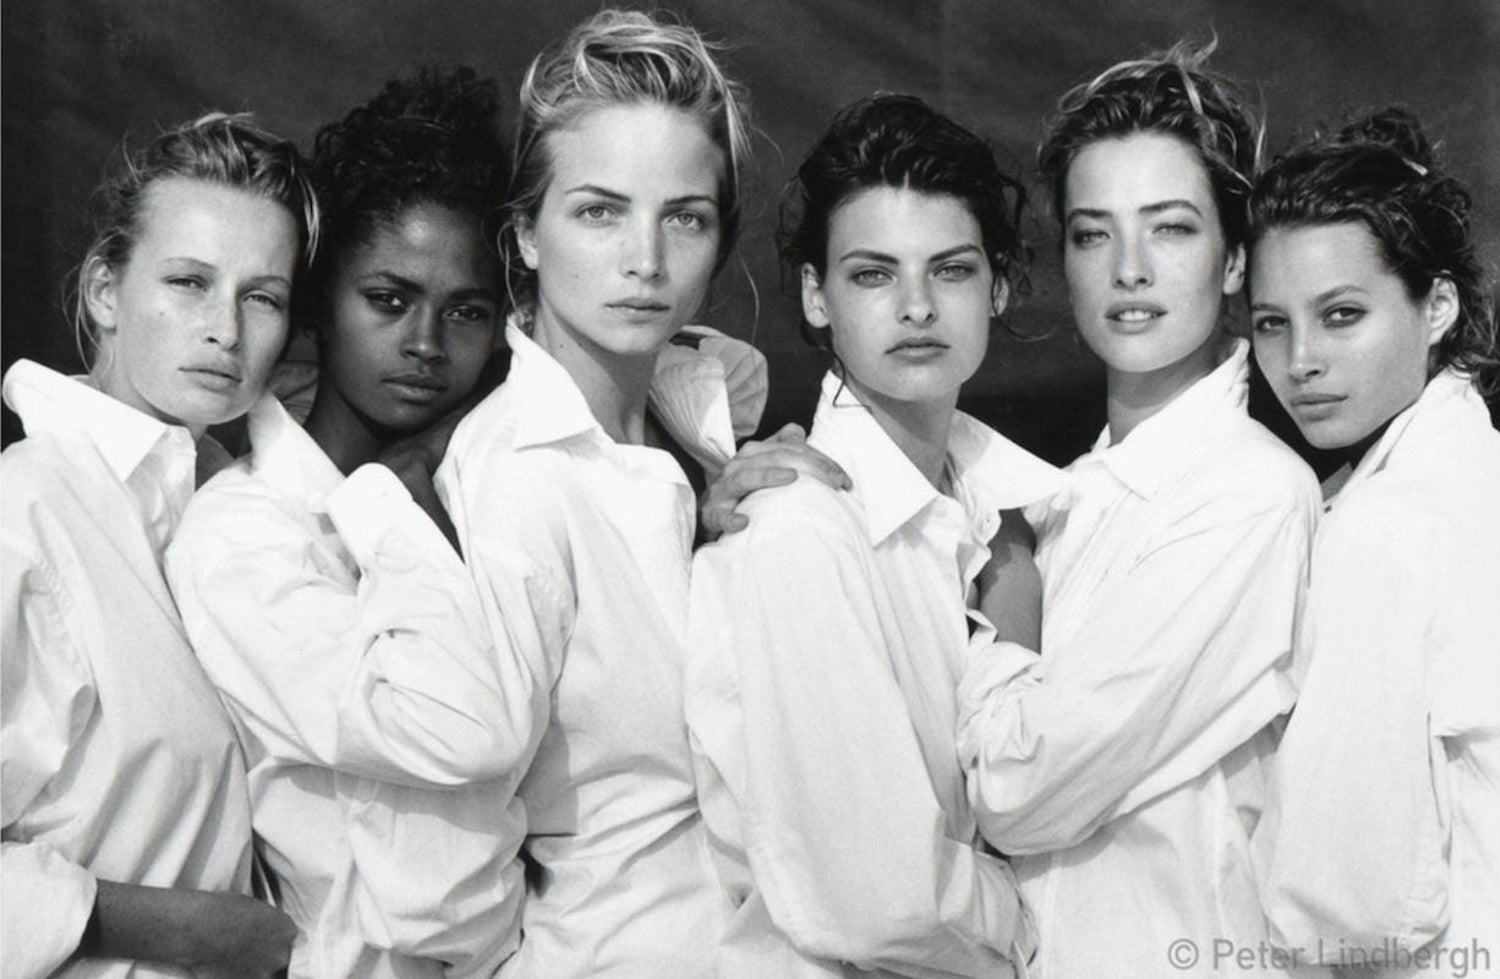 Estelle Lefebure, Karen Alexander, Rachel Williams, Linda Evangelista, Tatjana Patitz, Christy Turlington, Santa Monica, California, USA, 1998